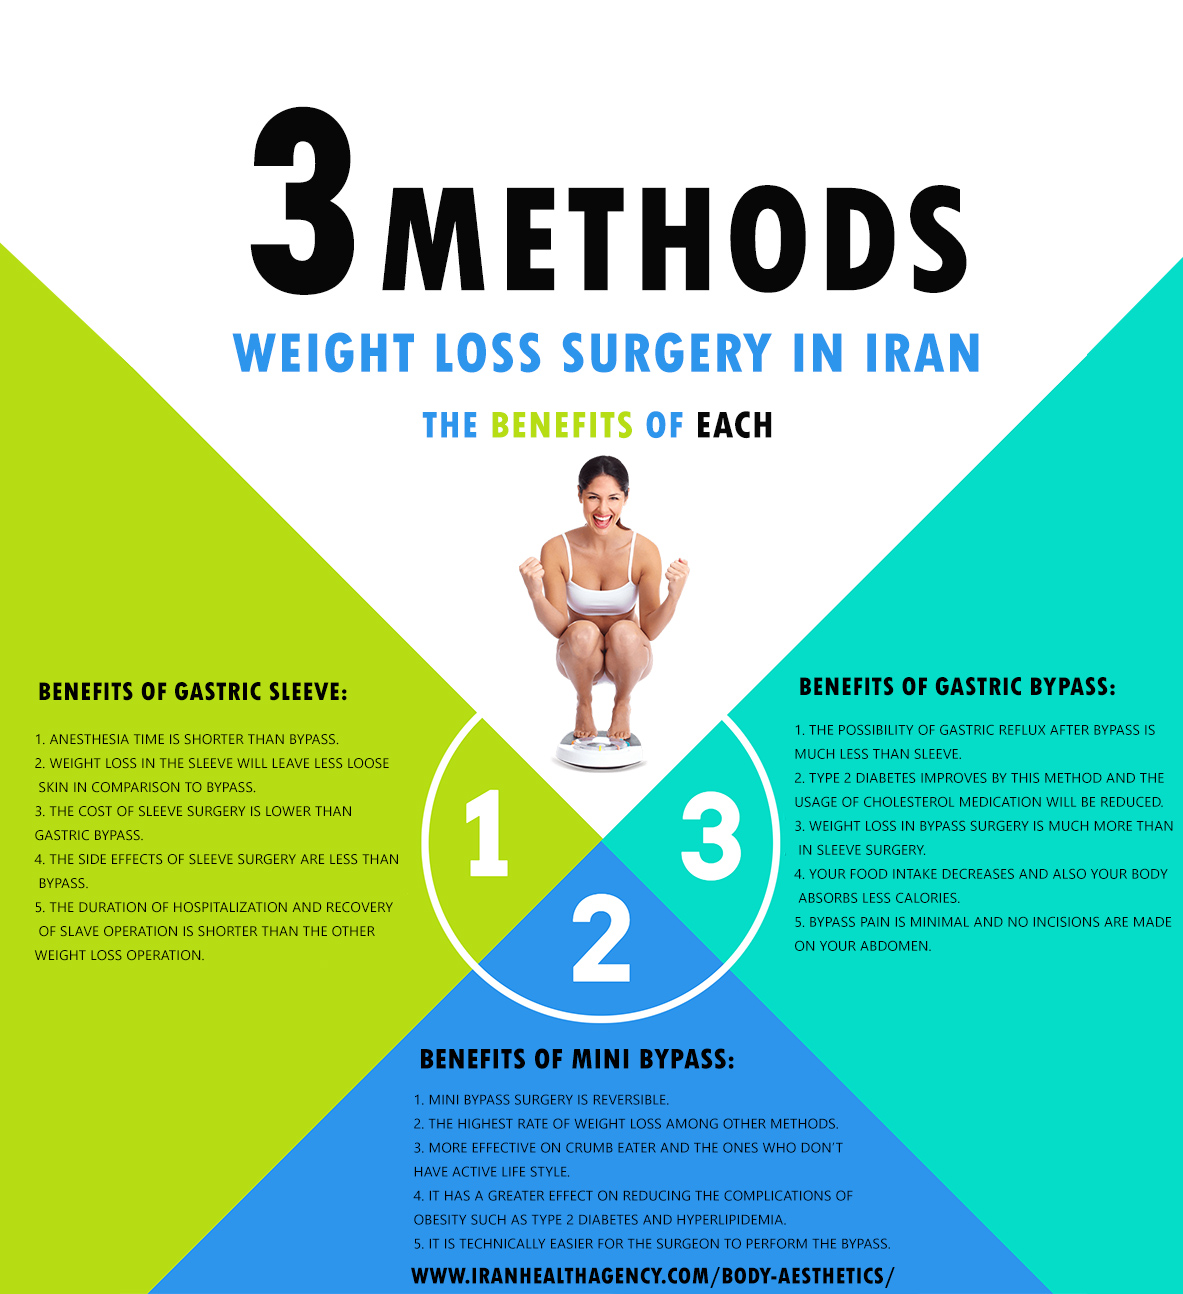 weight loss surgery in Iran infographic